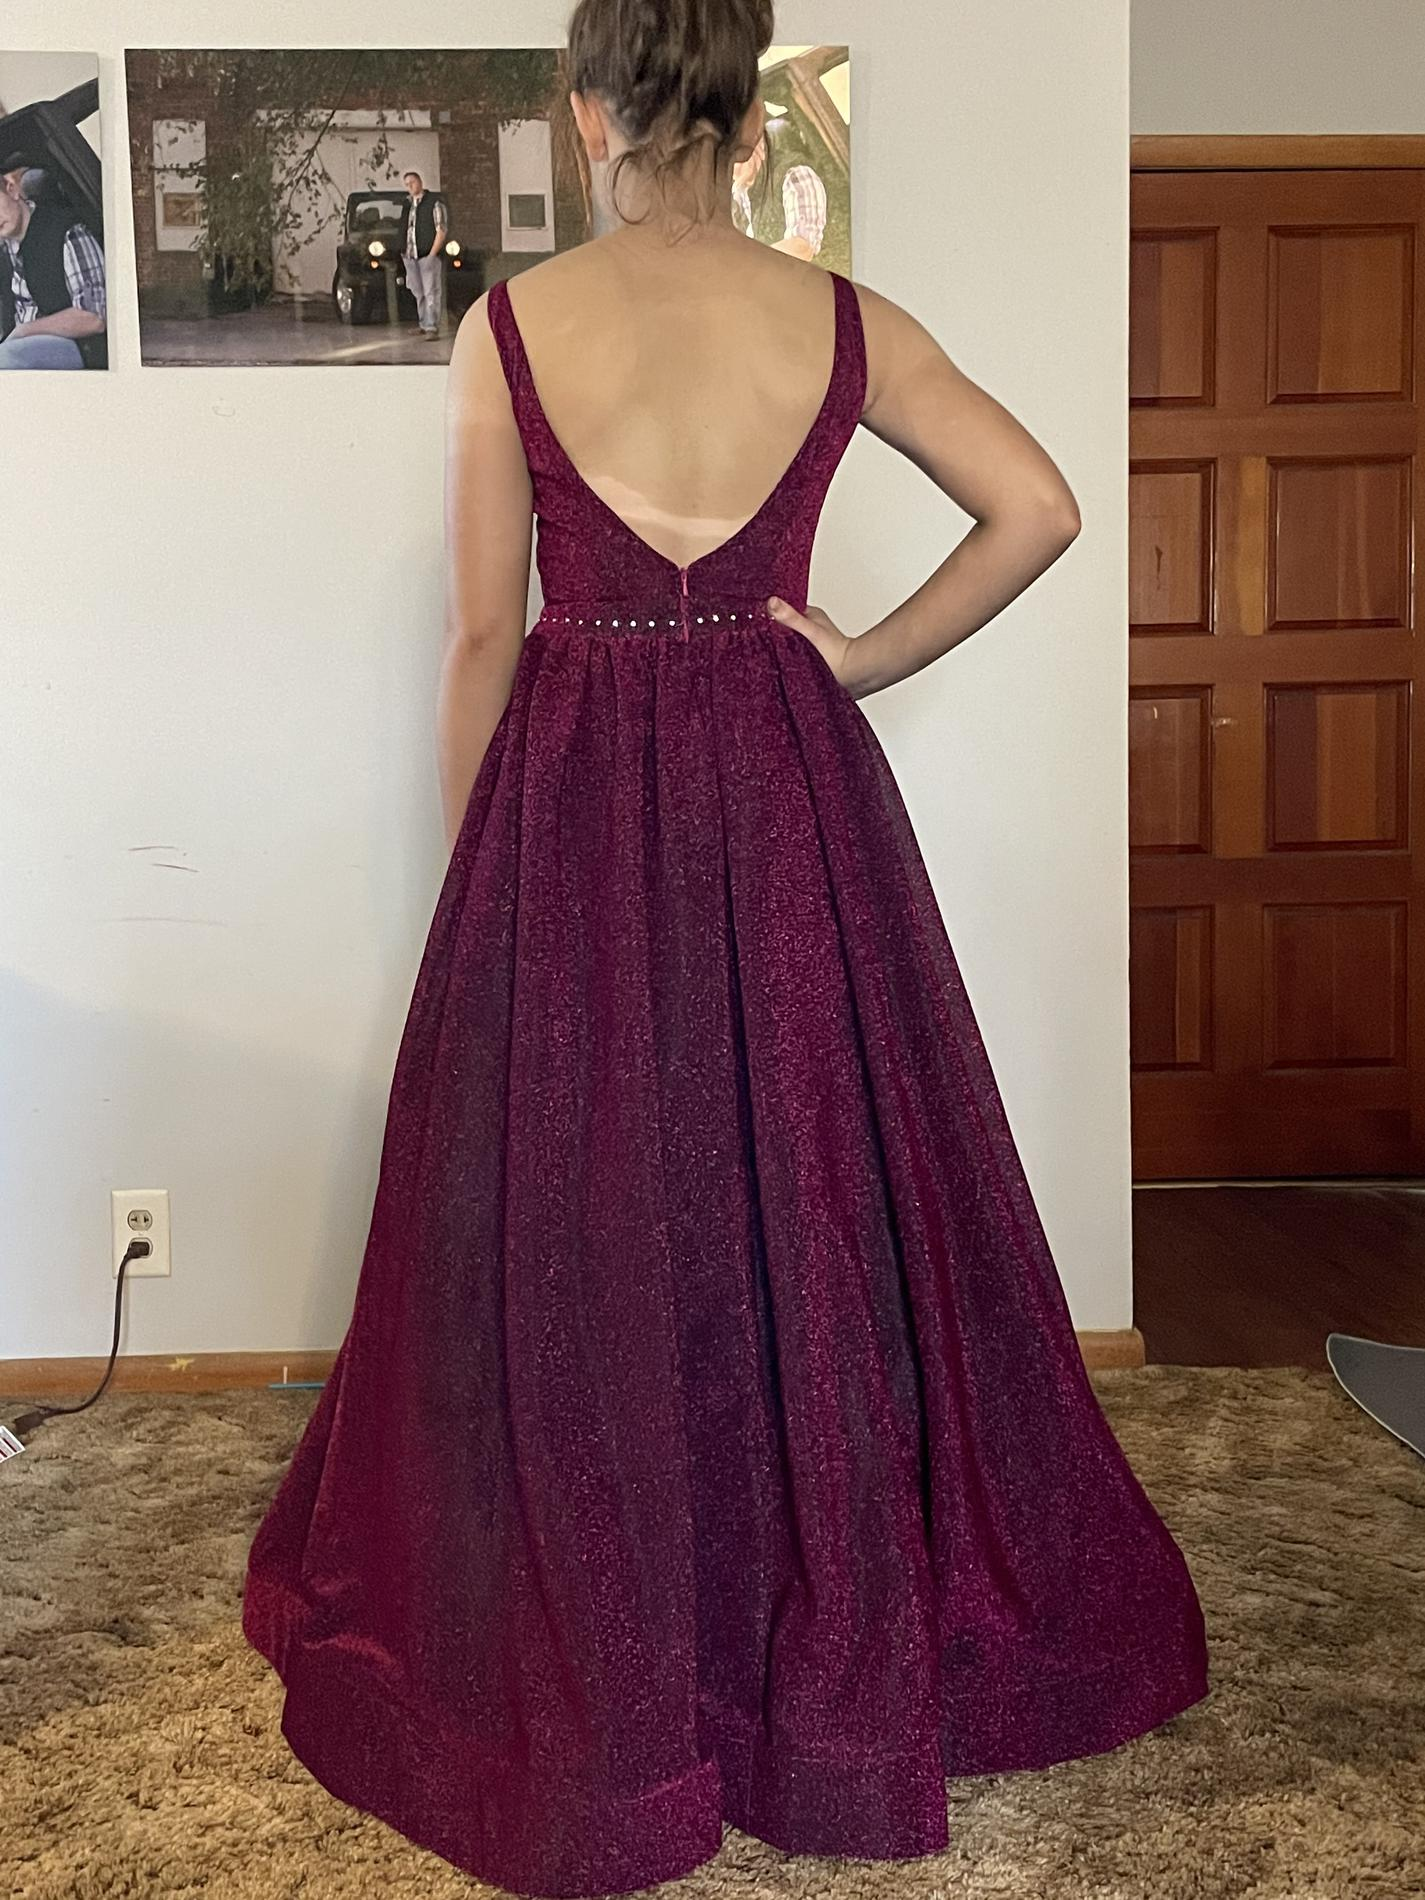 Lucci Lu Red Size 2 Prom Backless A-line Dress on Queenly